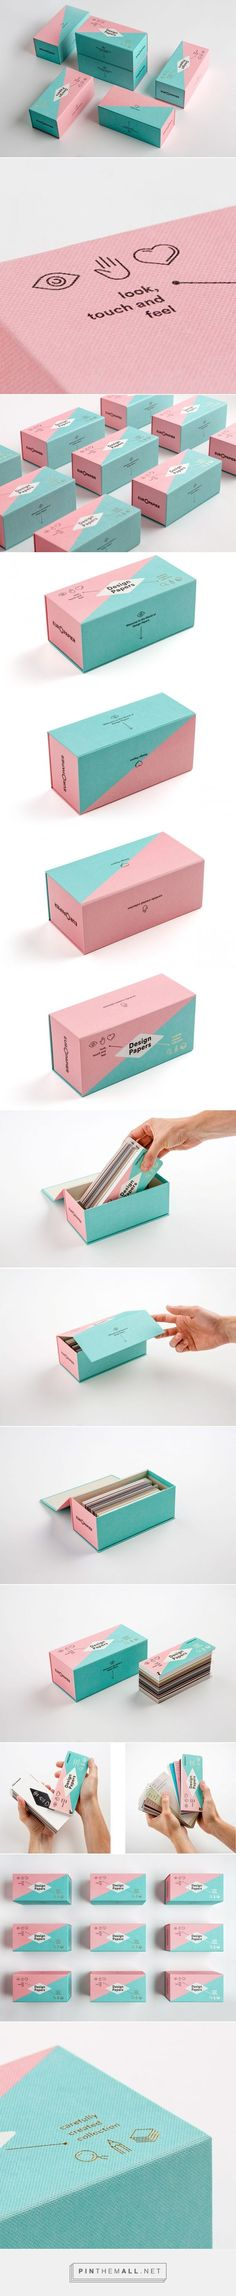 Design Papers 2016 ‪#‎packaging‬ ‪#‎design‬ by Metaklinika (‪#‎Serbia‬) - http://www.packagingoftheworld.com/2016/07/design-papers-2016.html